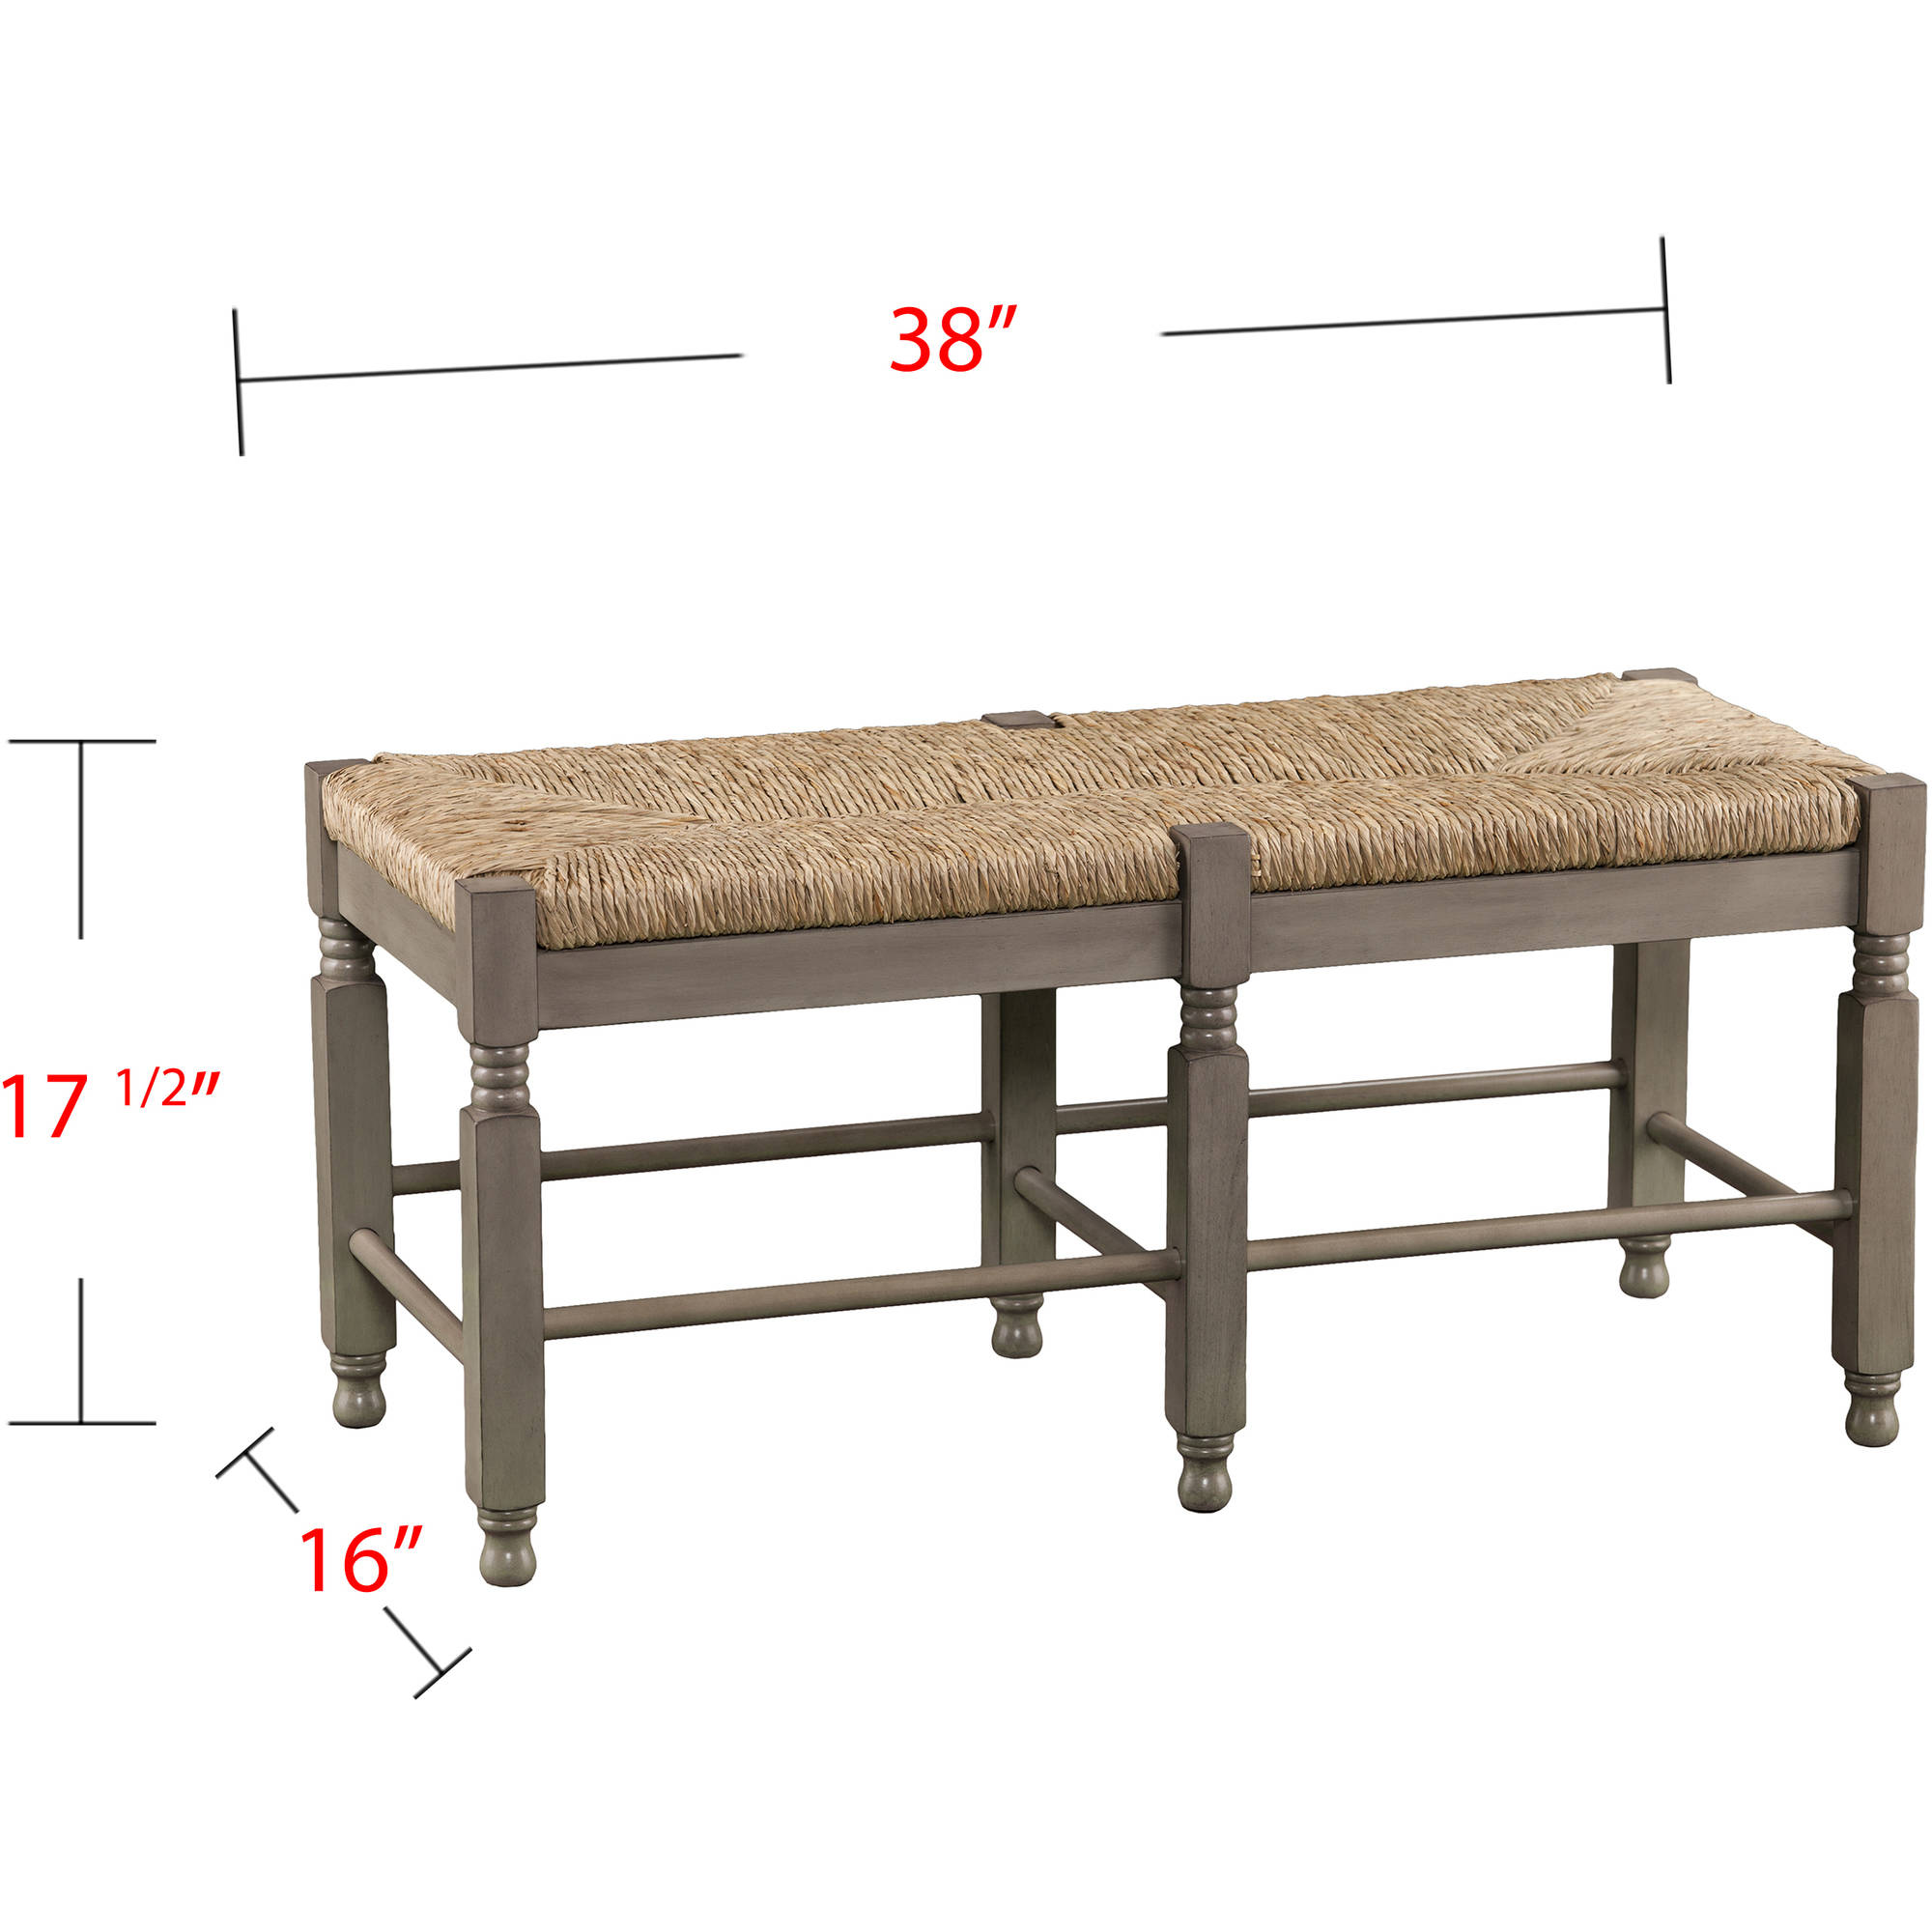 Superior Southern Enterprises Kuskyn Seagrass Bench/Coffee Table, Antique Dove Gray  Image 5 Of 8 Amazing Design